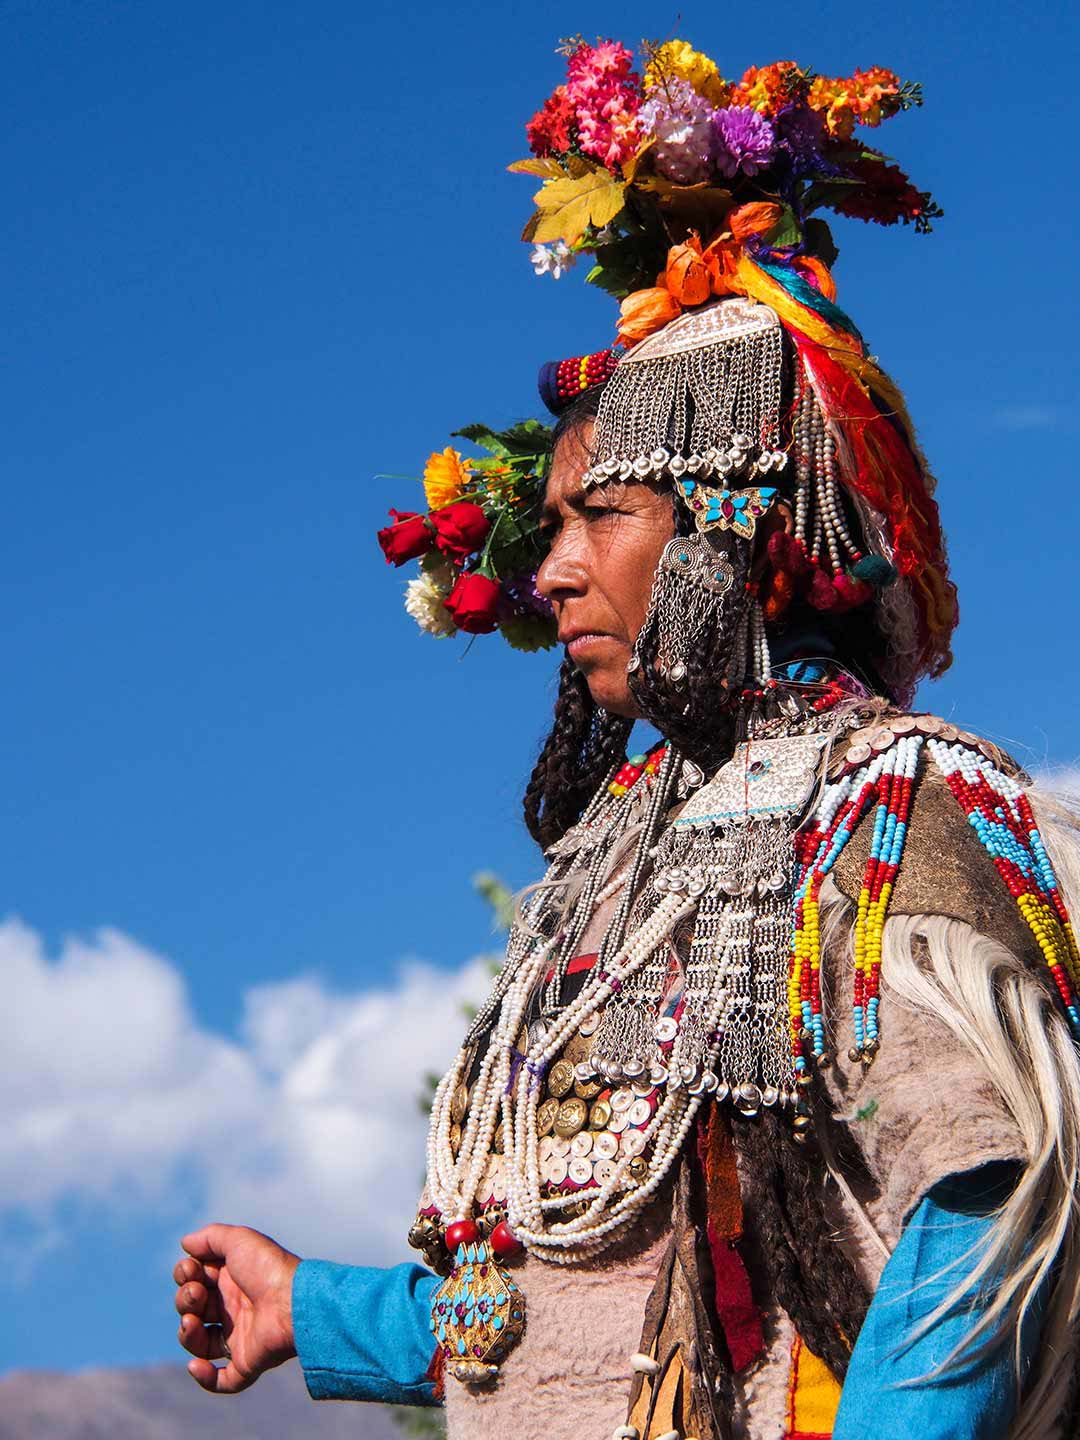 The Dha Hanu people wear elaborate floral headdress